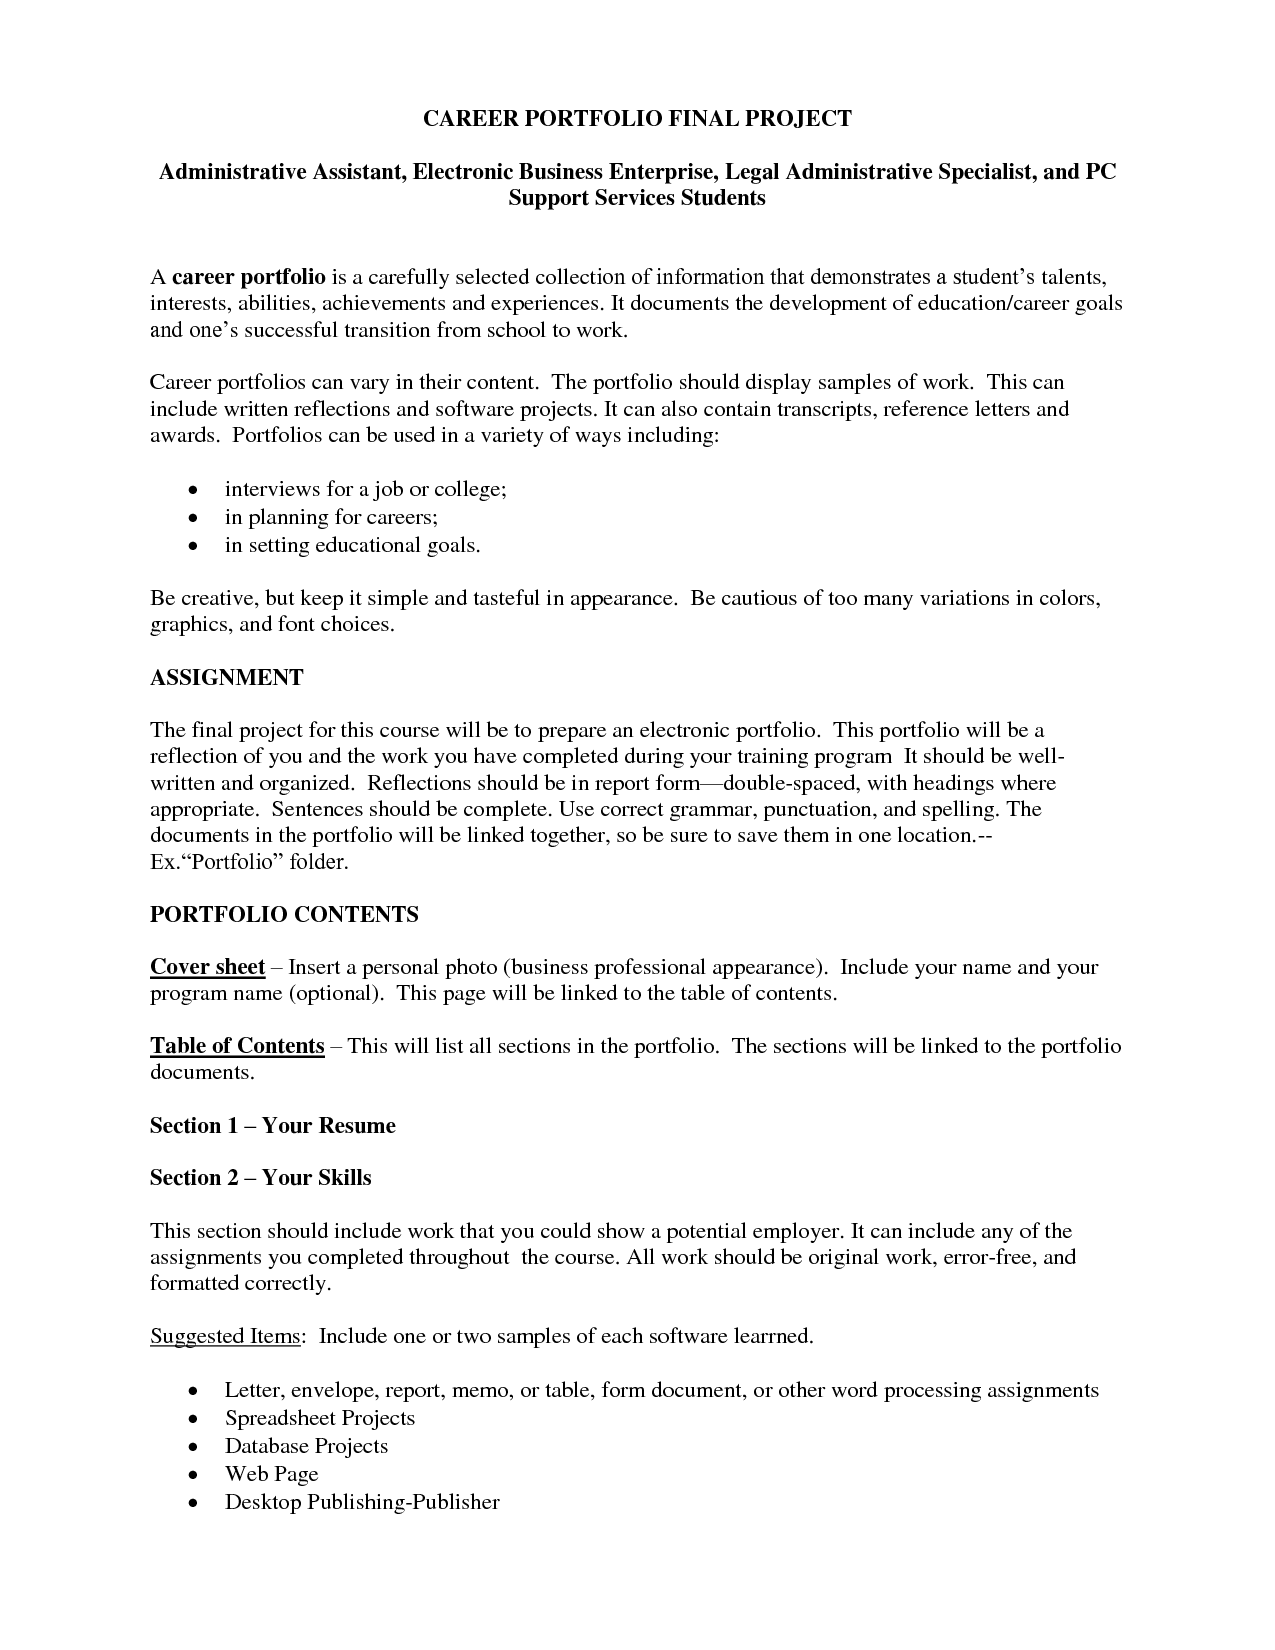 Medical Assistant Resume Template Free Custom Legal Administrative Resume Samples  Httpersumelegal